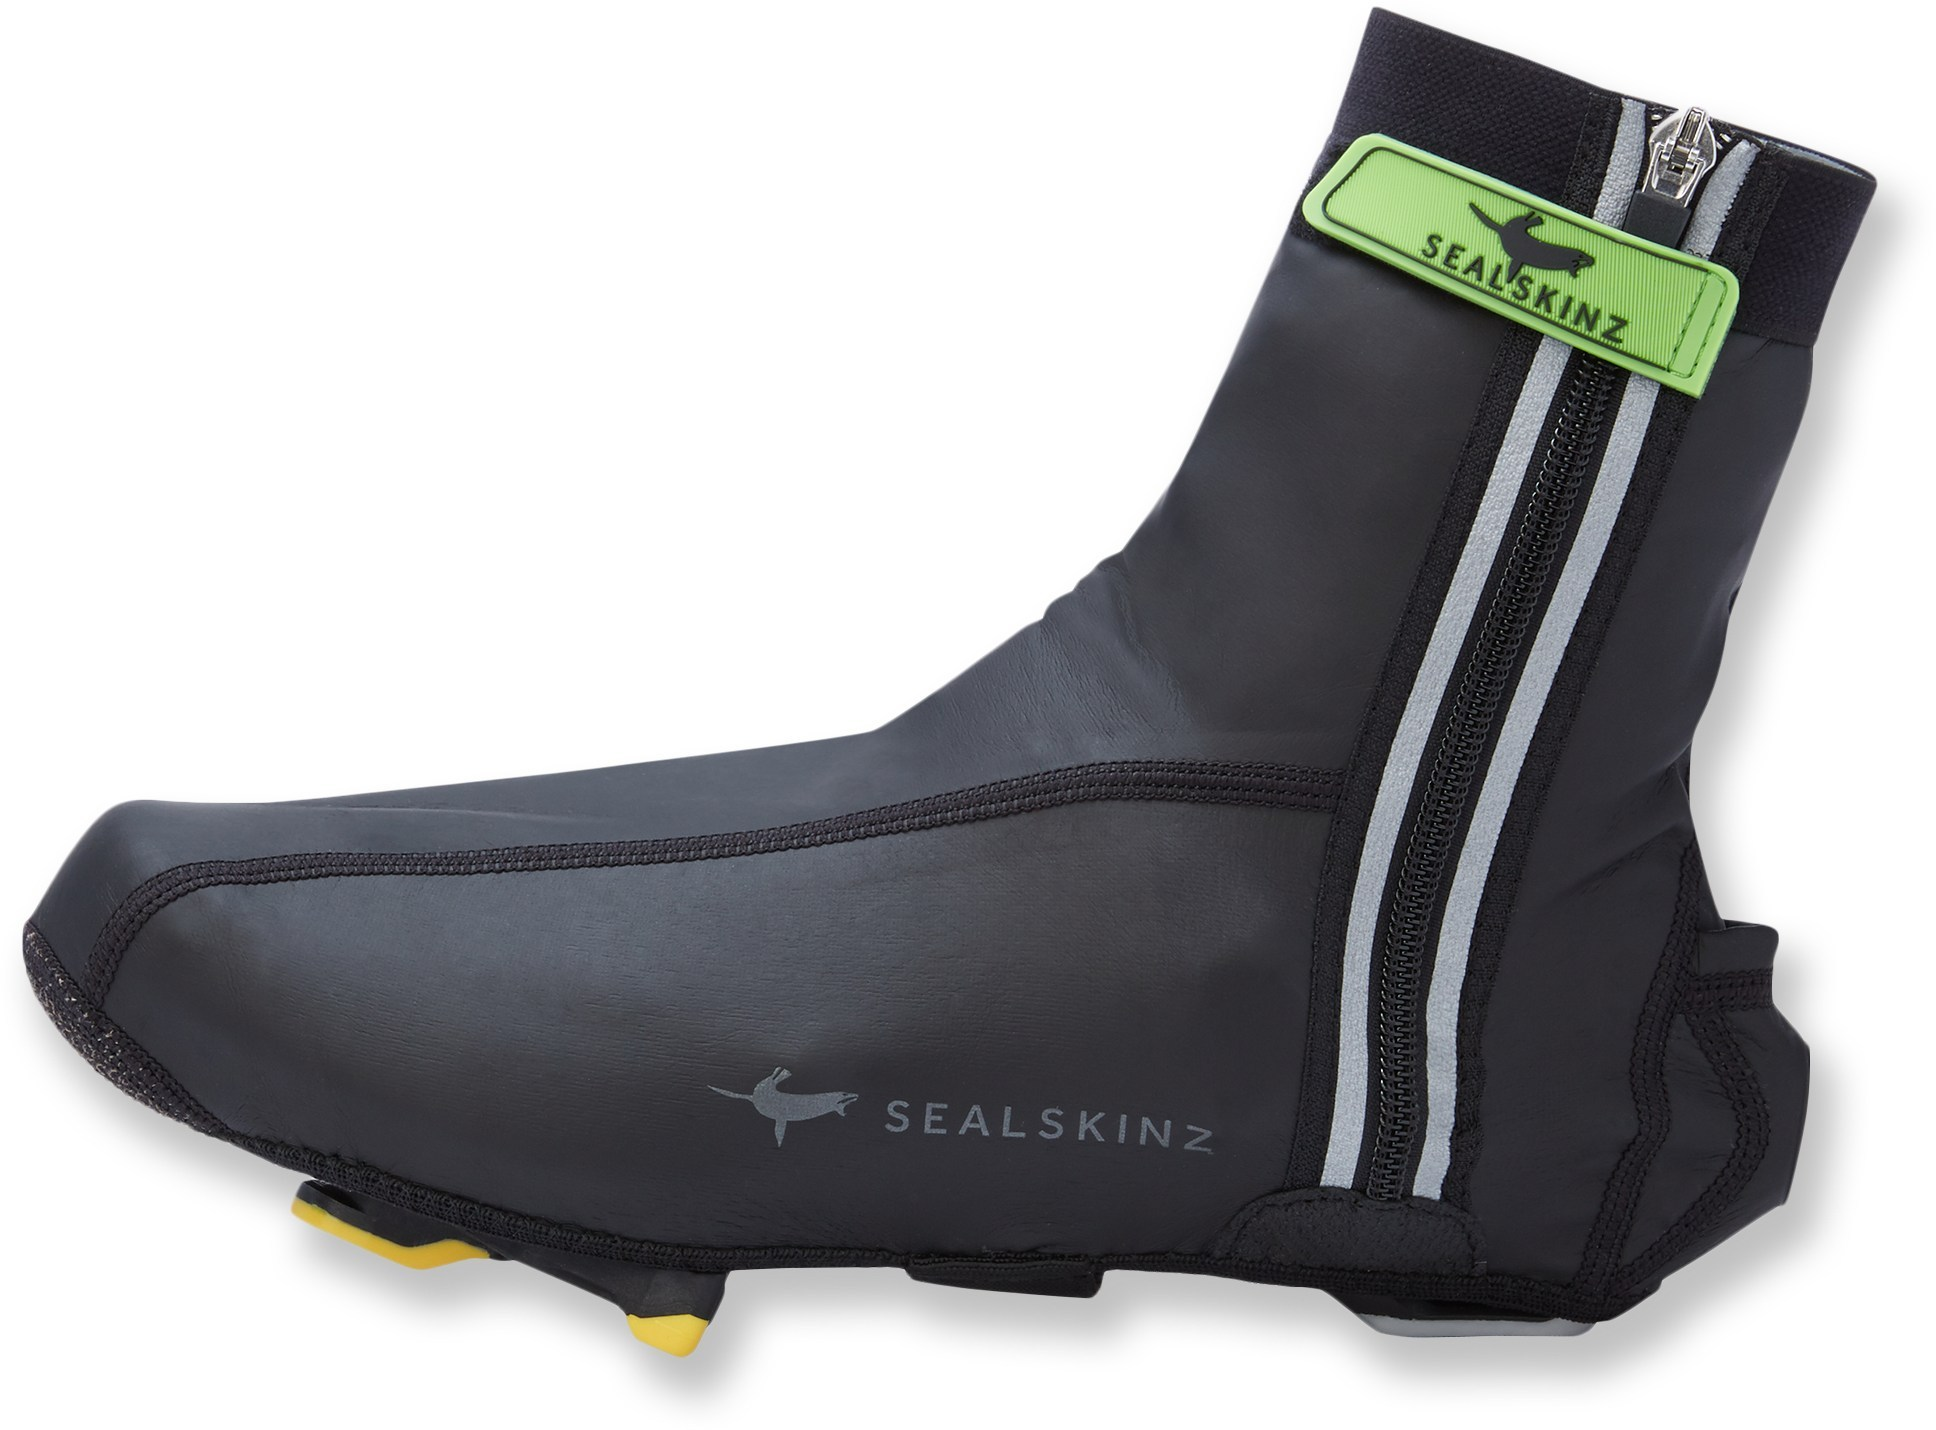 Sealskinz Halo Lightweight Bike Shoe Covers